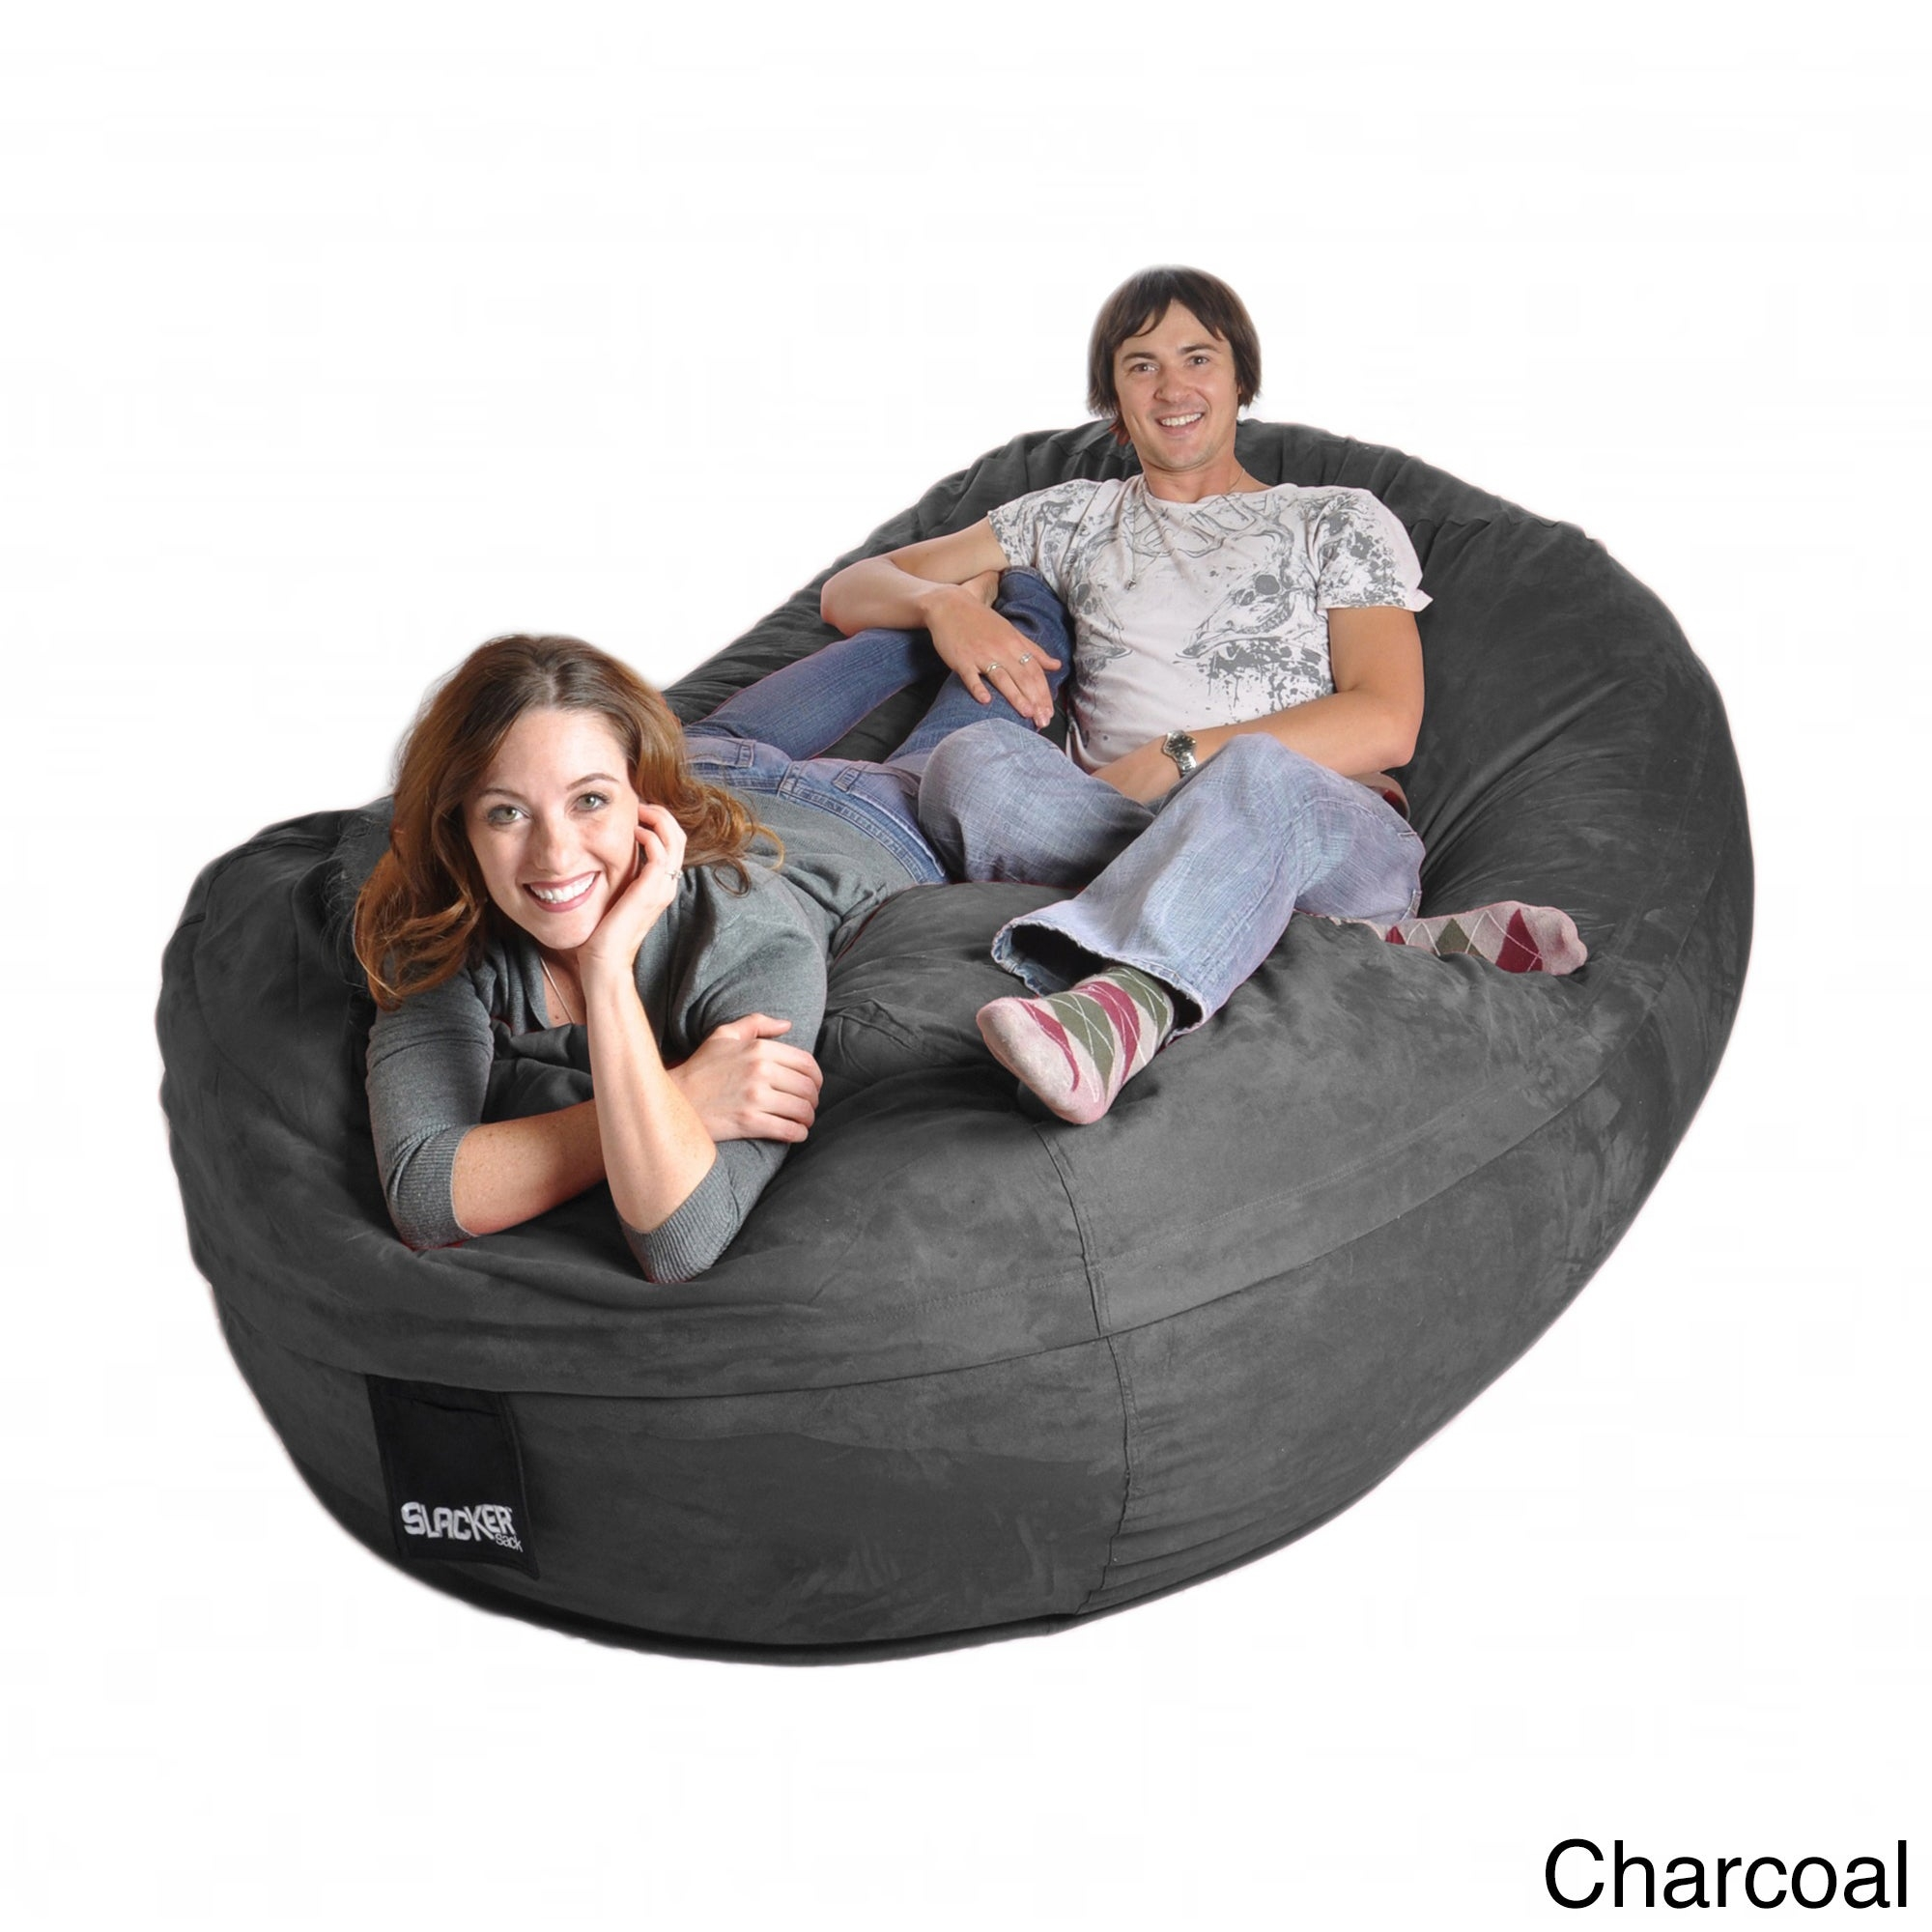 Most Comfortable Bean Bag Chairs 3